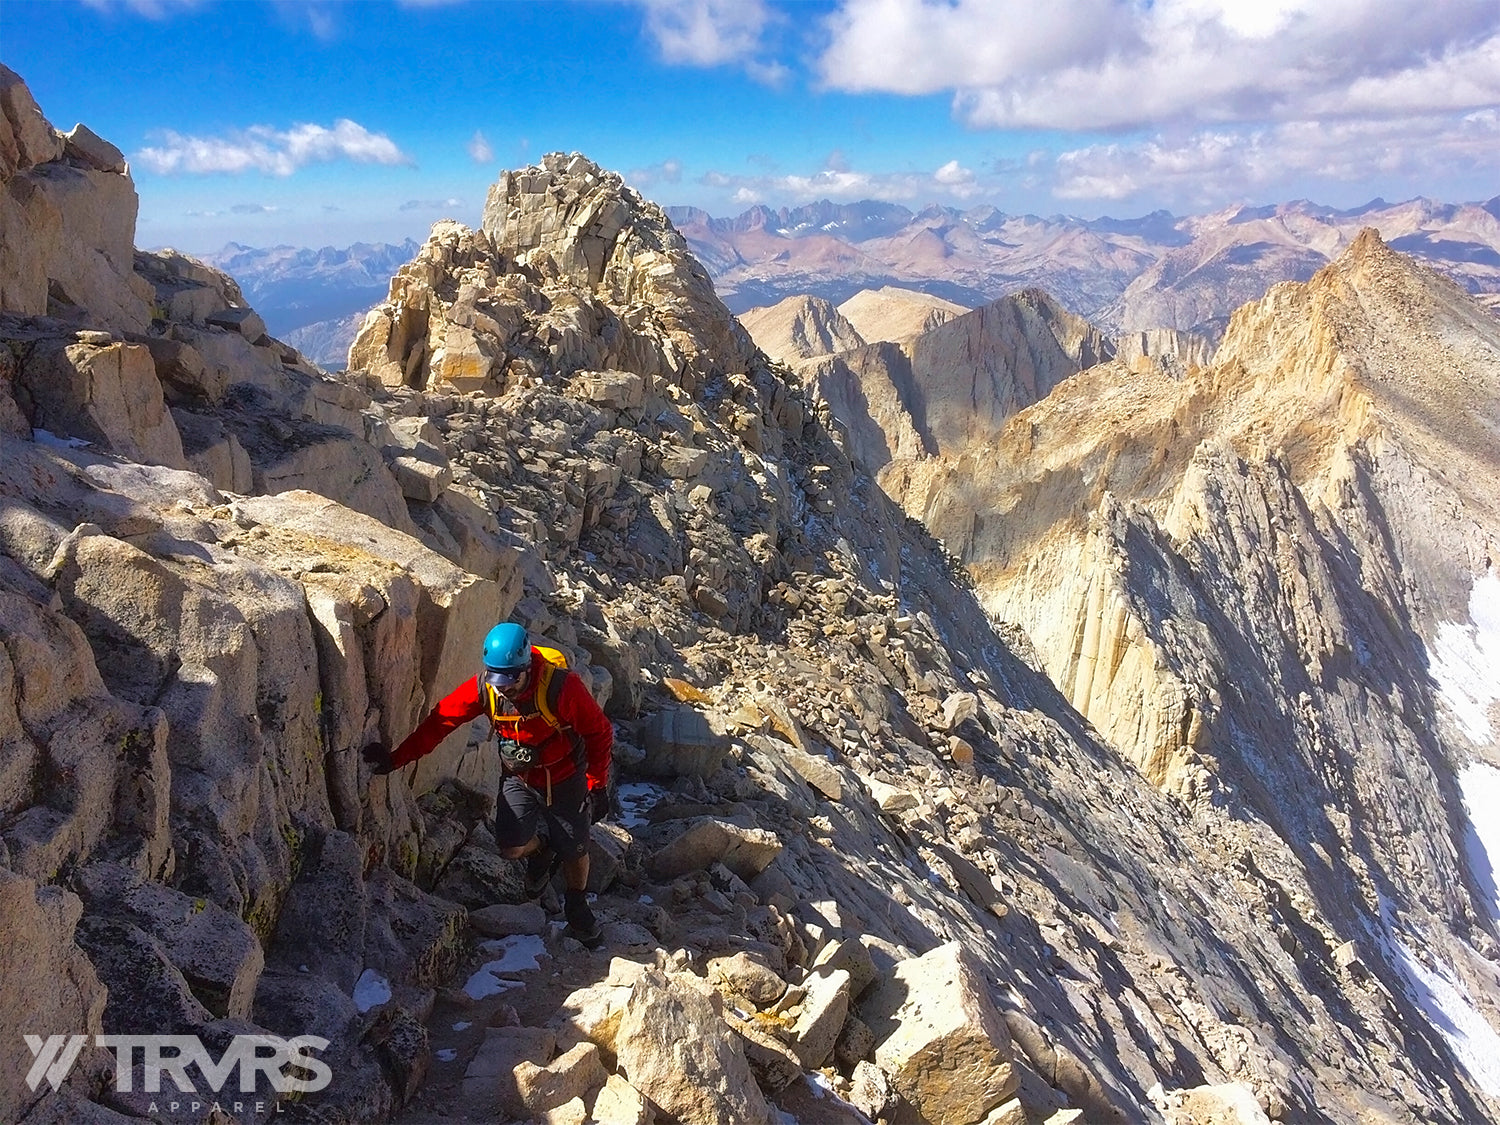 The Return from the West Summit of Mount Russell | TRVRS APPAREL